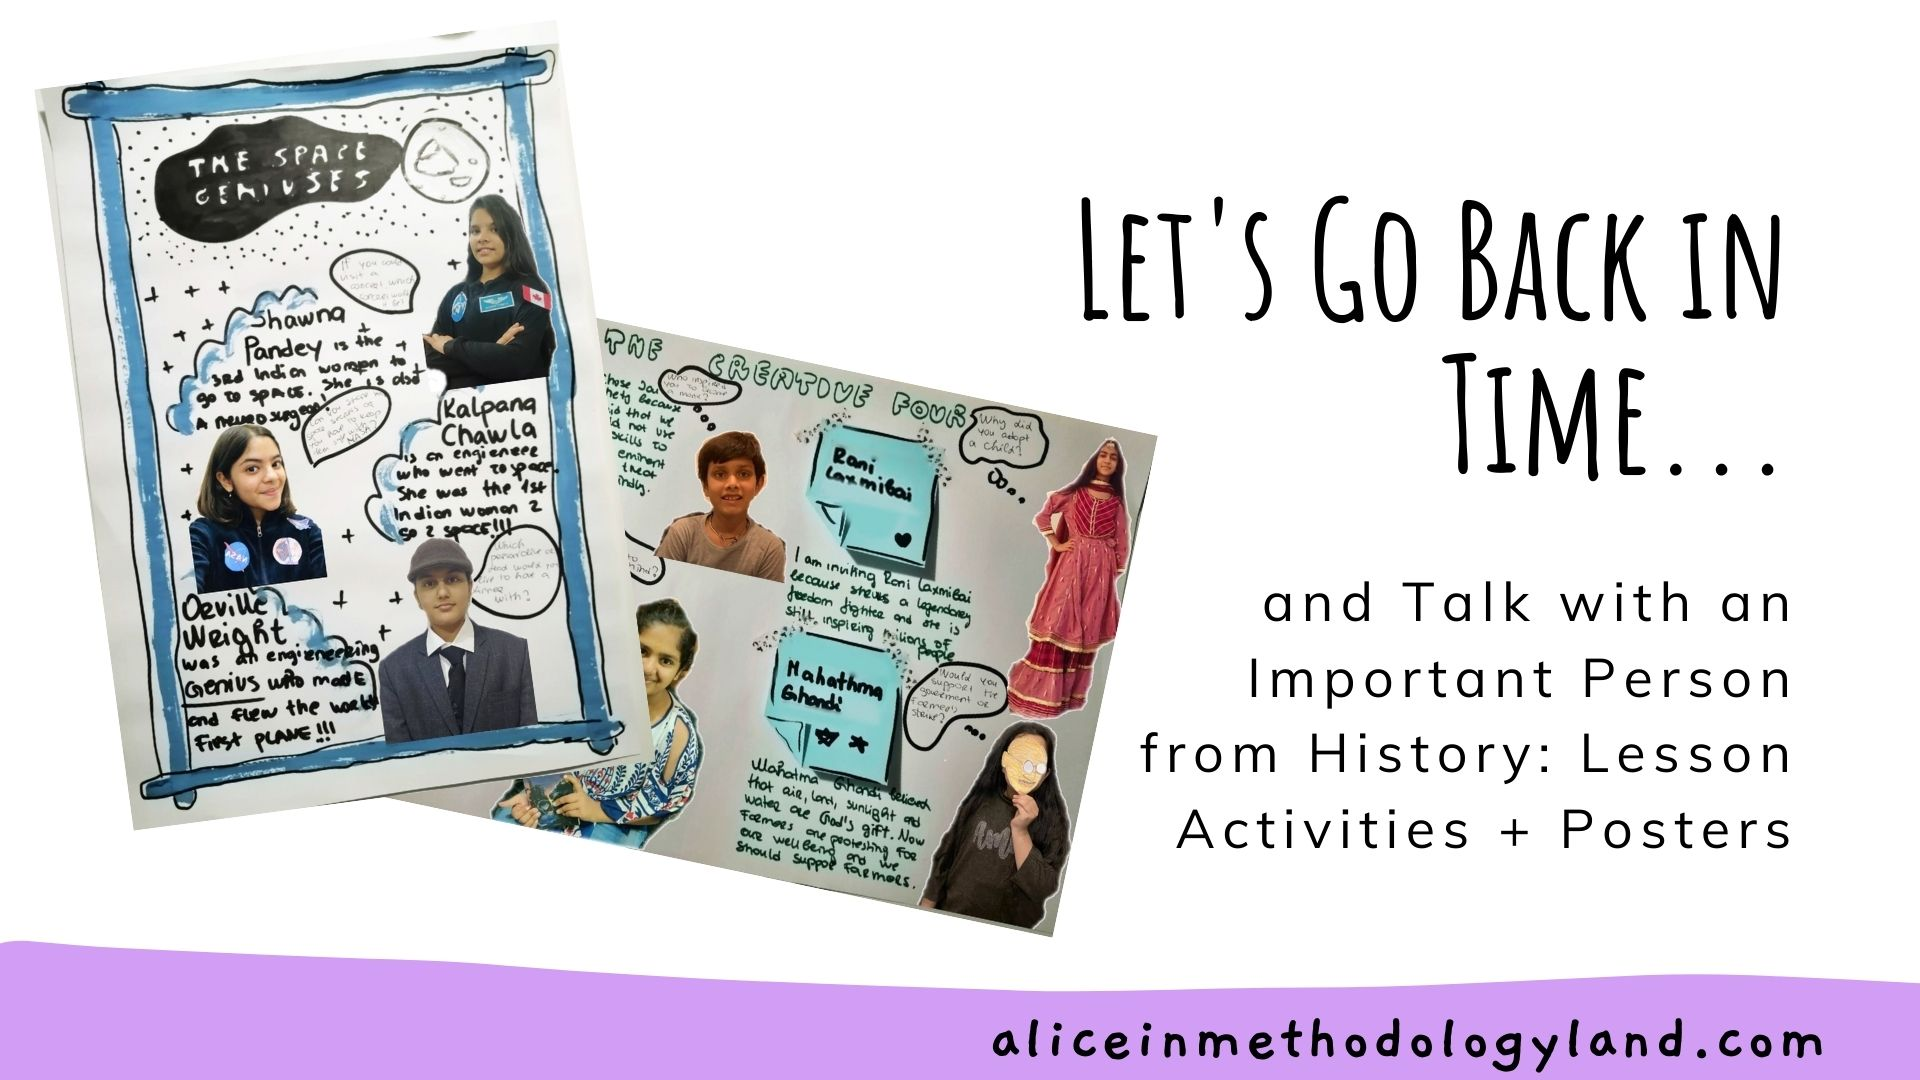 Let's Go Back in the Past and Talk with an Important Person from History: Lesson Activities + Posters